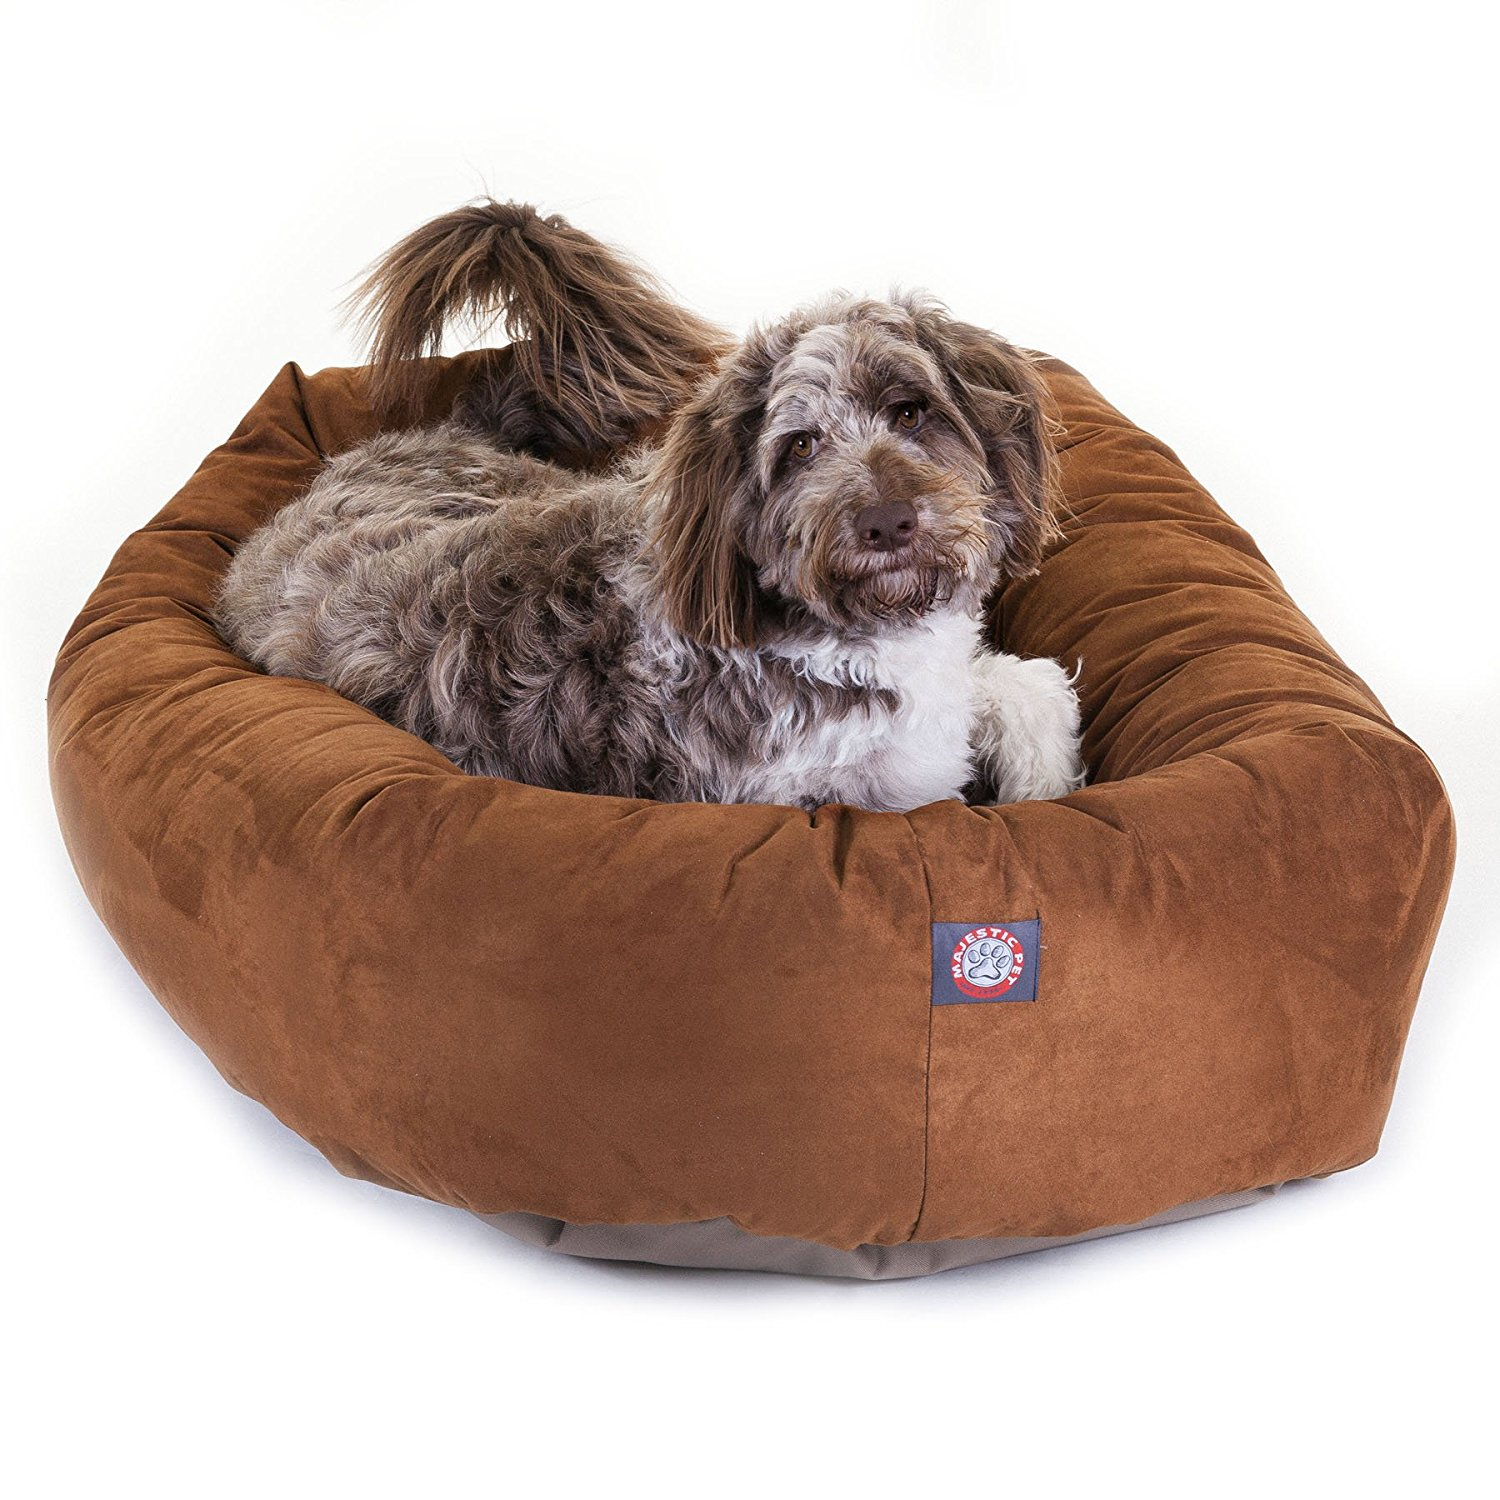 The Very Best Dog Beds for Dogs